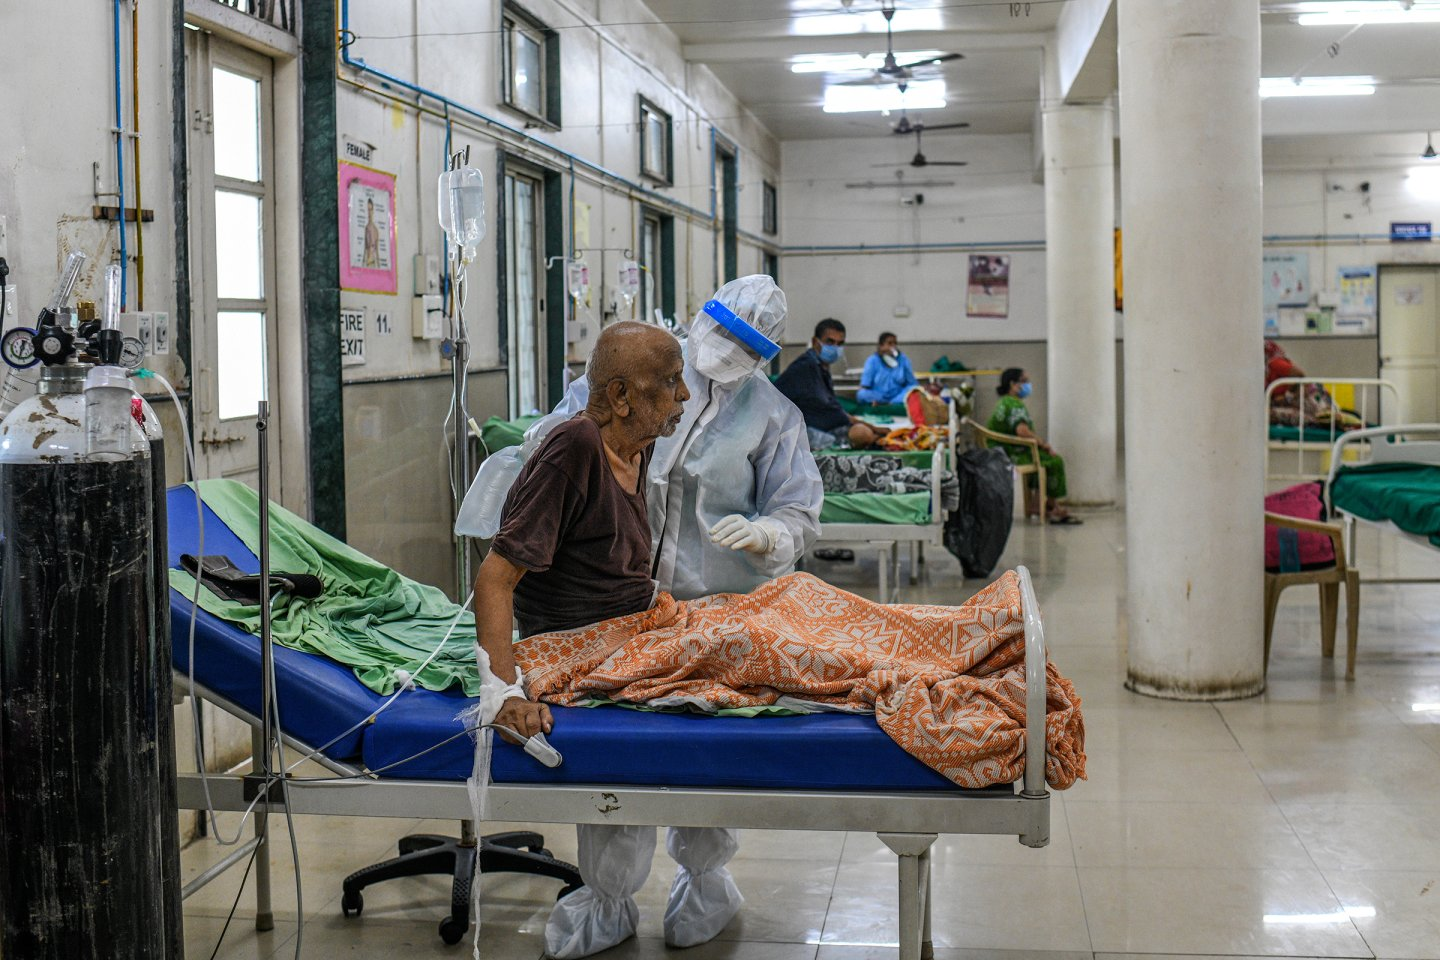 A Nurse take care of Covid19 patient at the ICU facility in Aundh district hospital in Pune. (Photo By Atul Loke For Time)